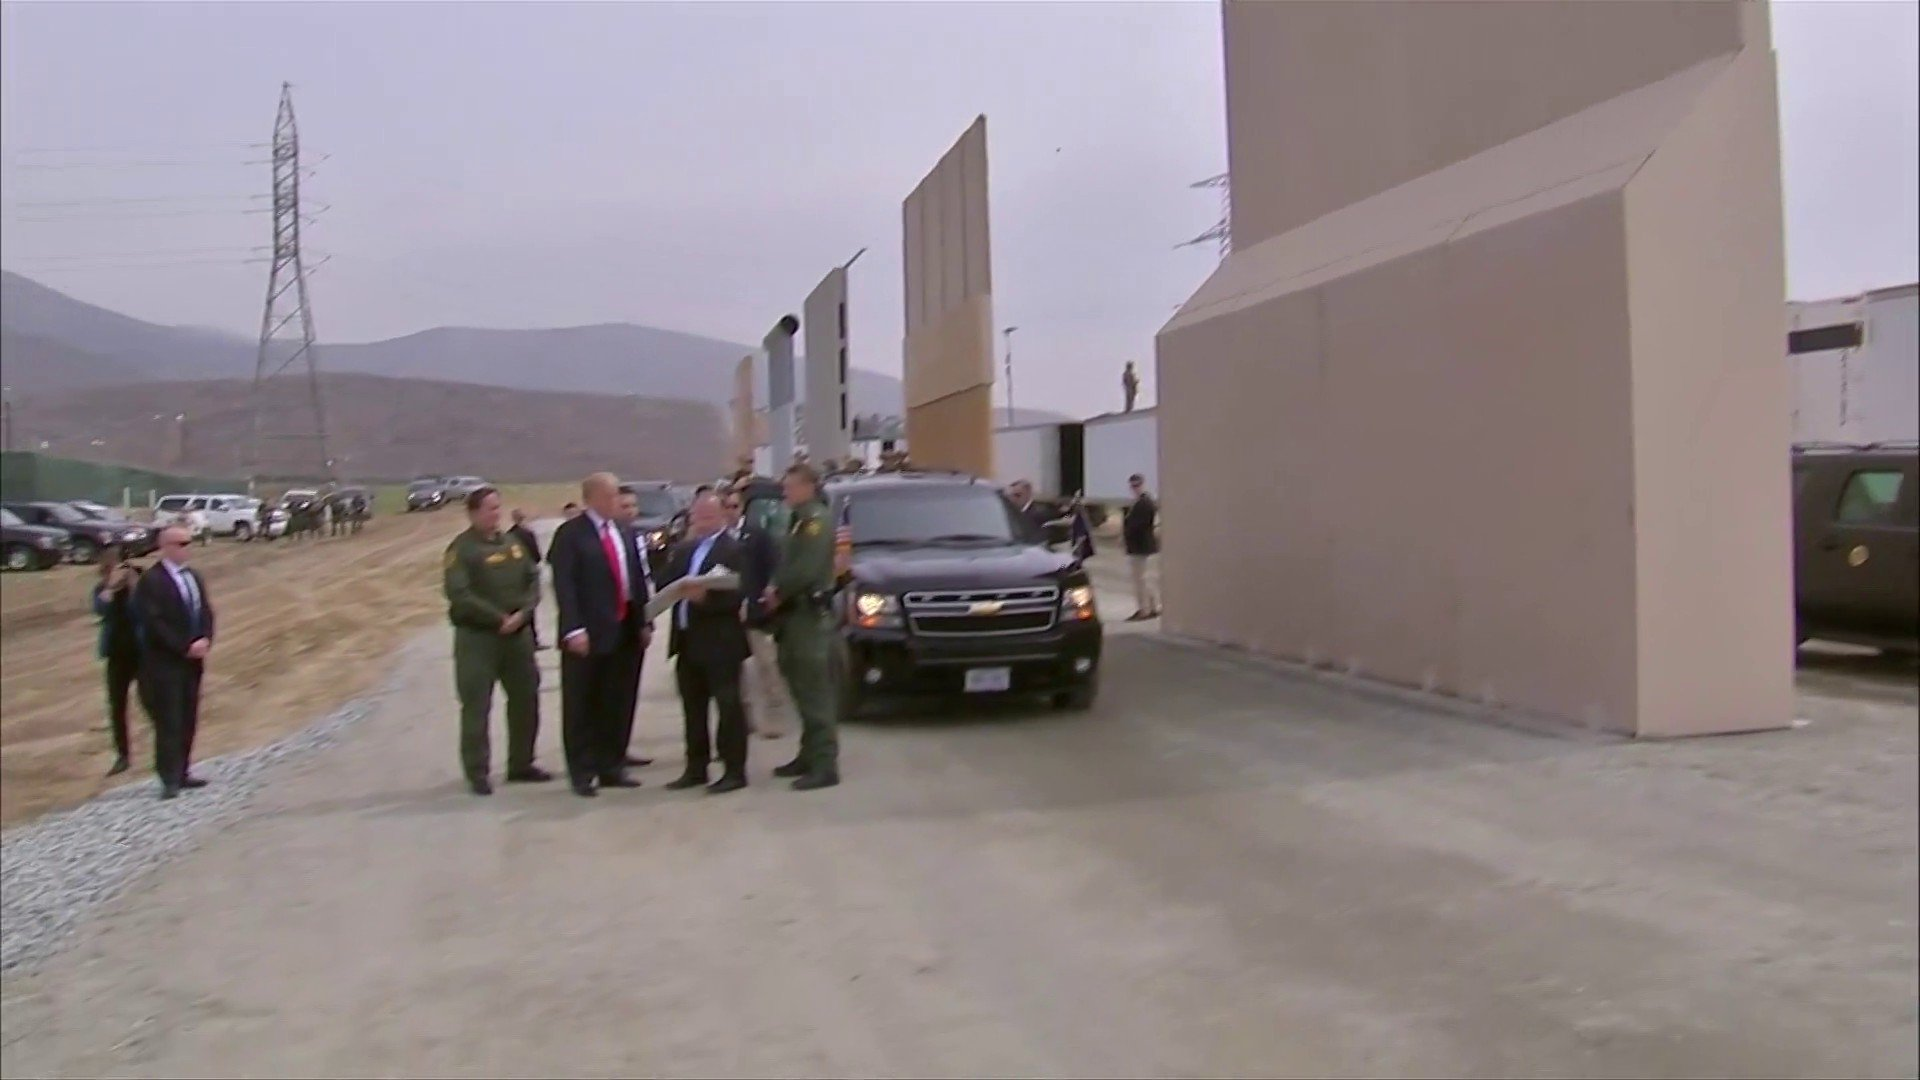 President Trump arrives to review border wall prototypes. https://t.co/iC8d4w5dIp https://t.co/W31h7xj6c8